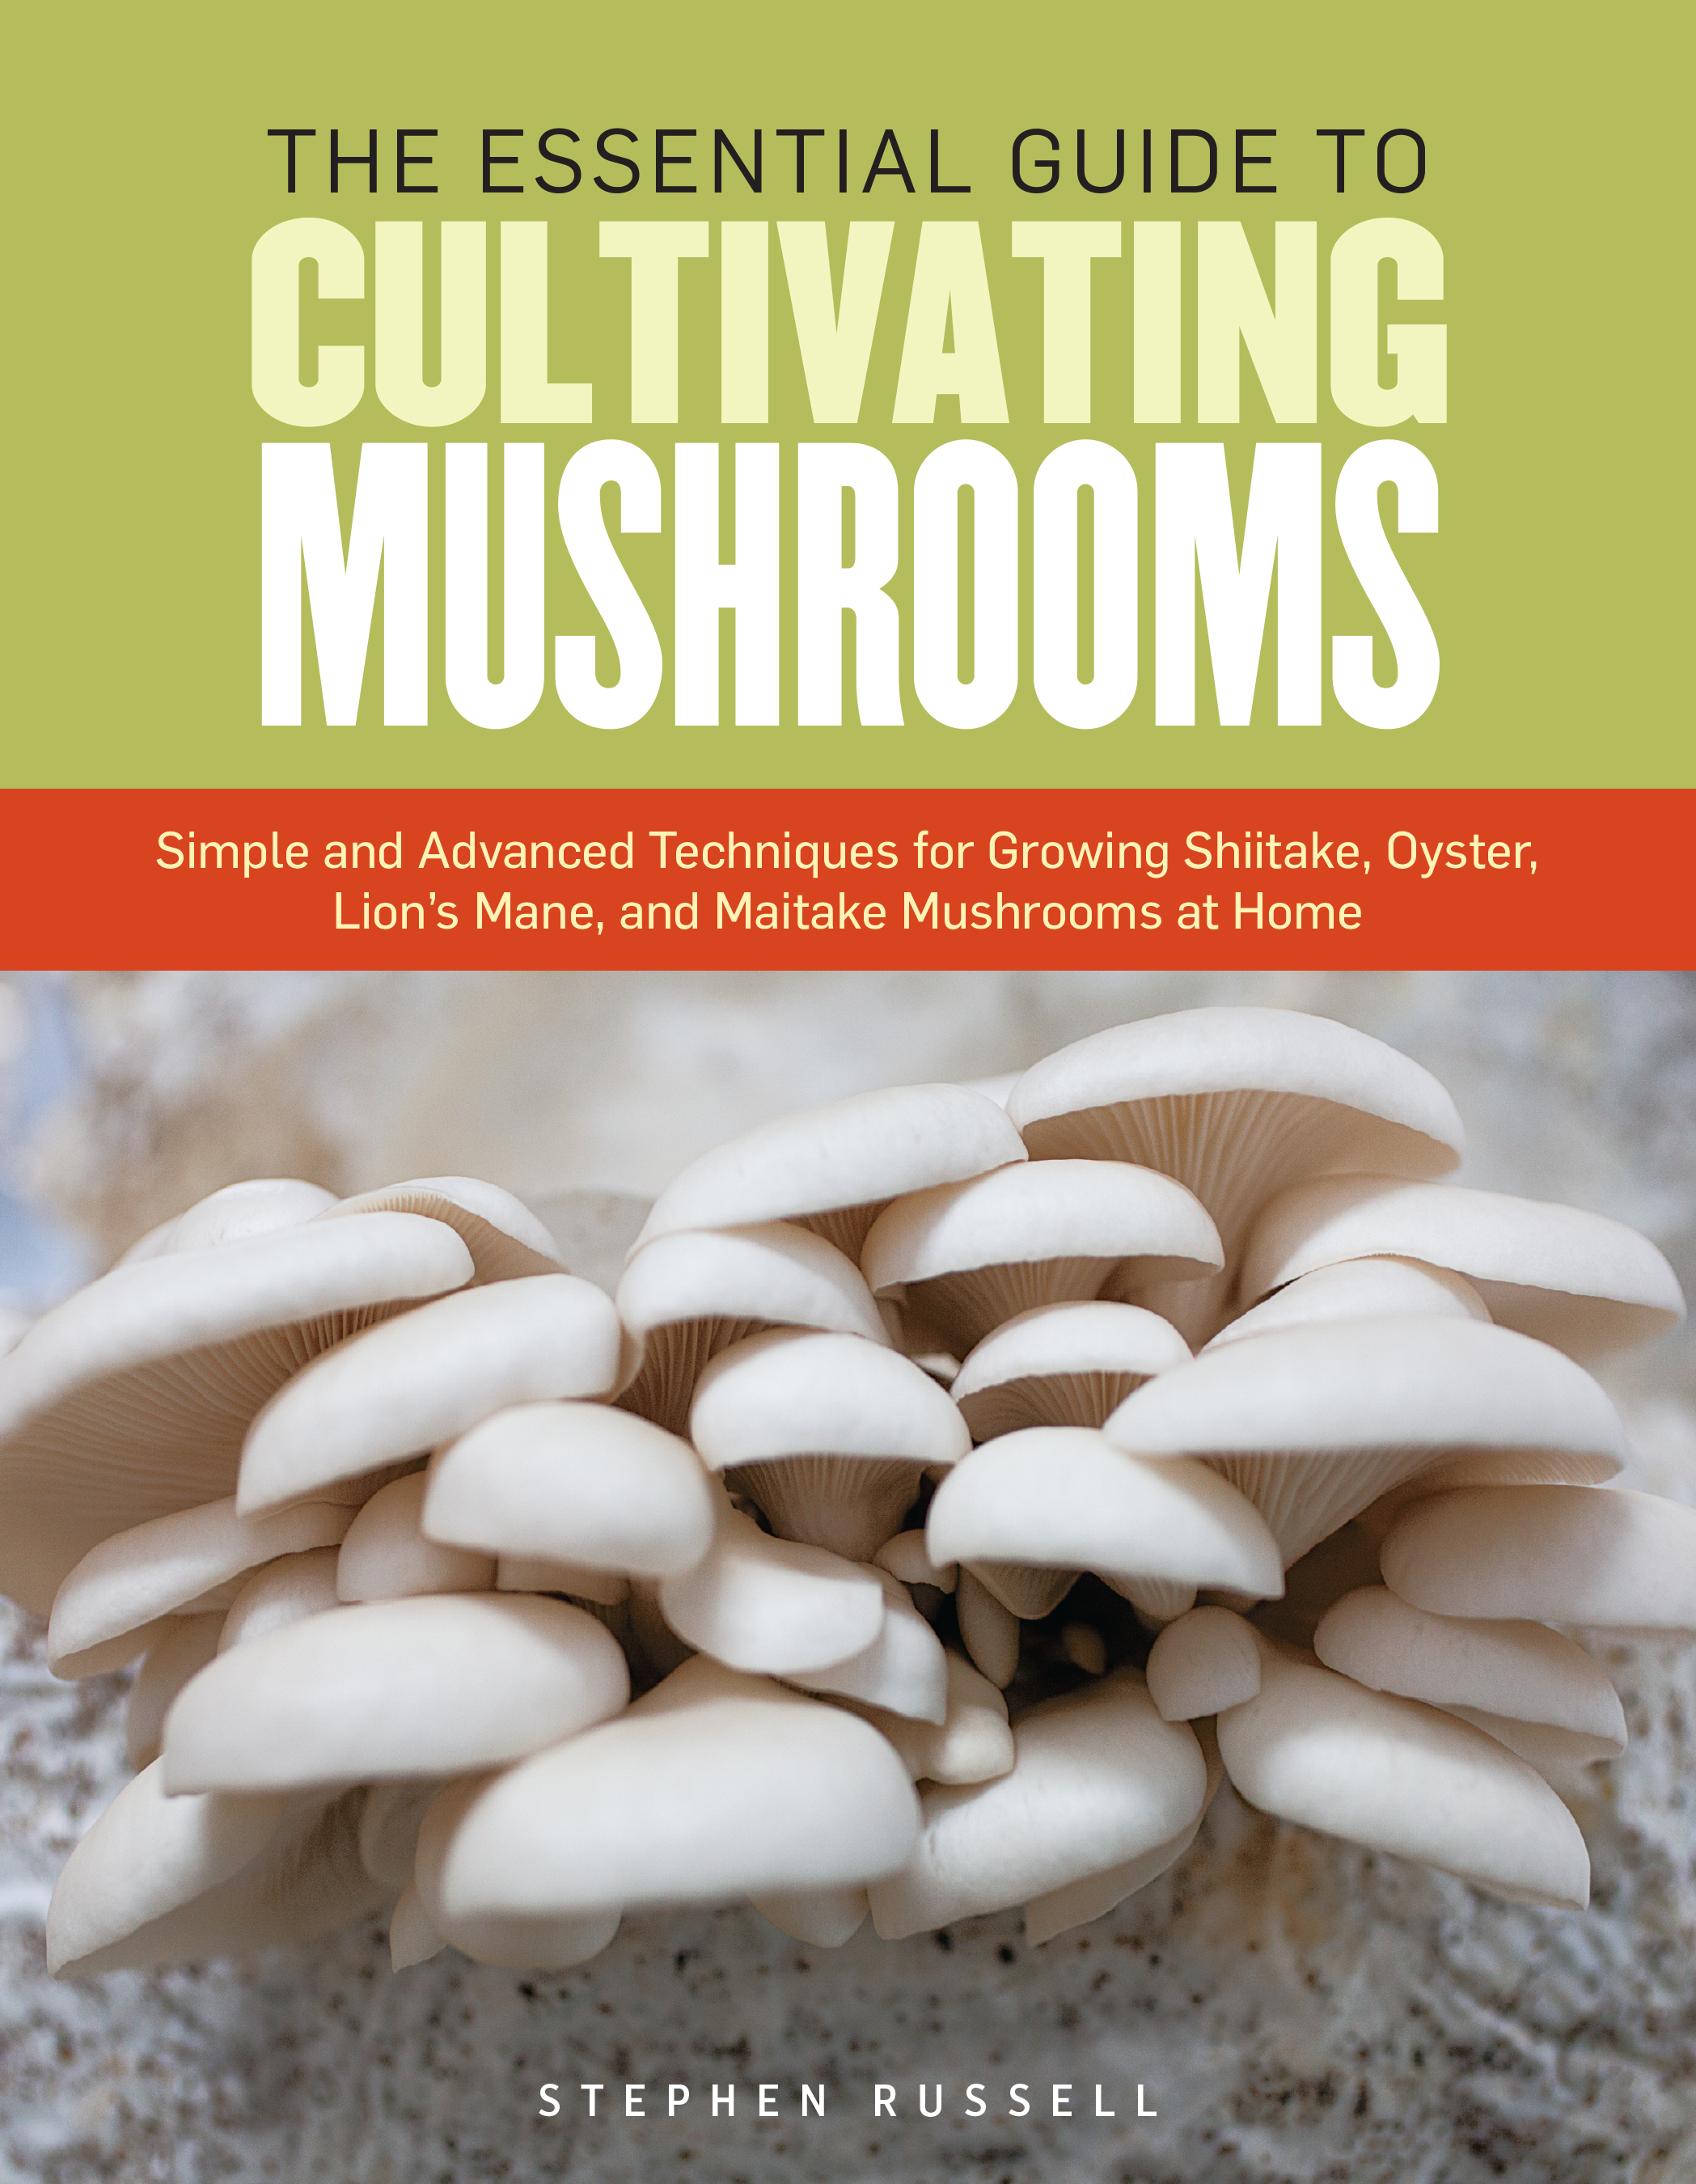 The Essential Guide to Cultivating Mushrooms Simple and Advanced Techniques for Growing Shiitake, Oyster, Lion's Mane, and Maitake Mushrooms at Home - Stephen Russell